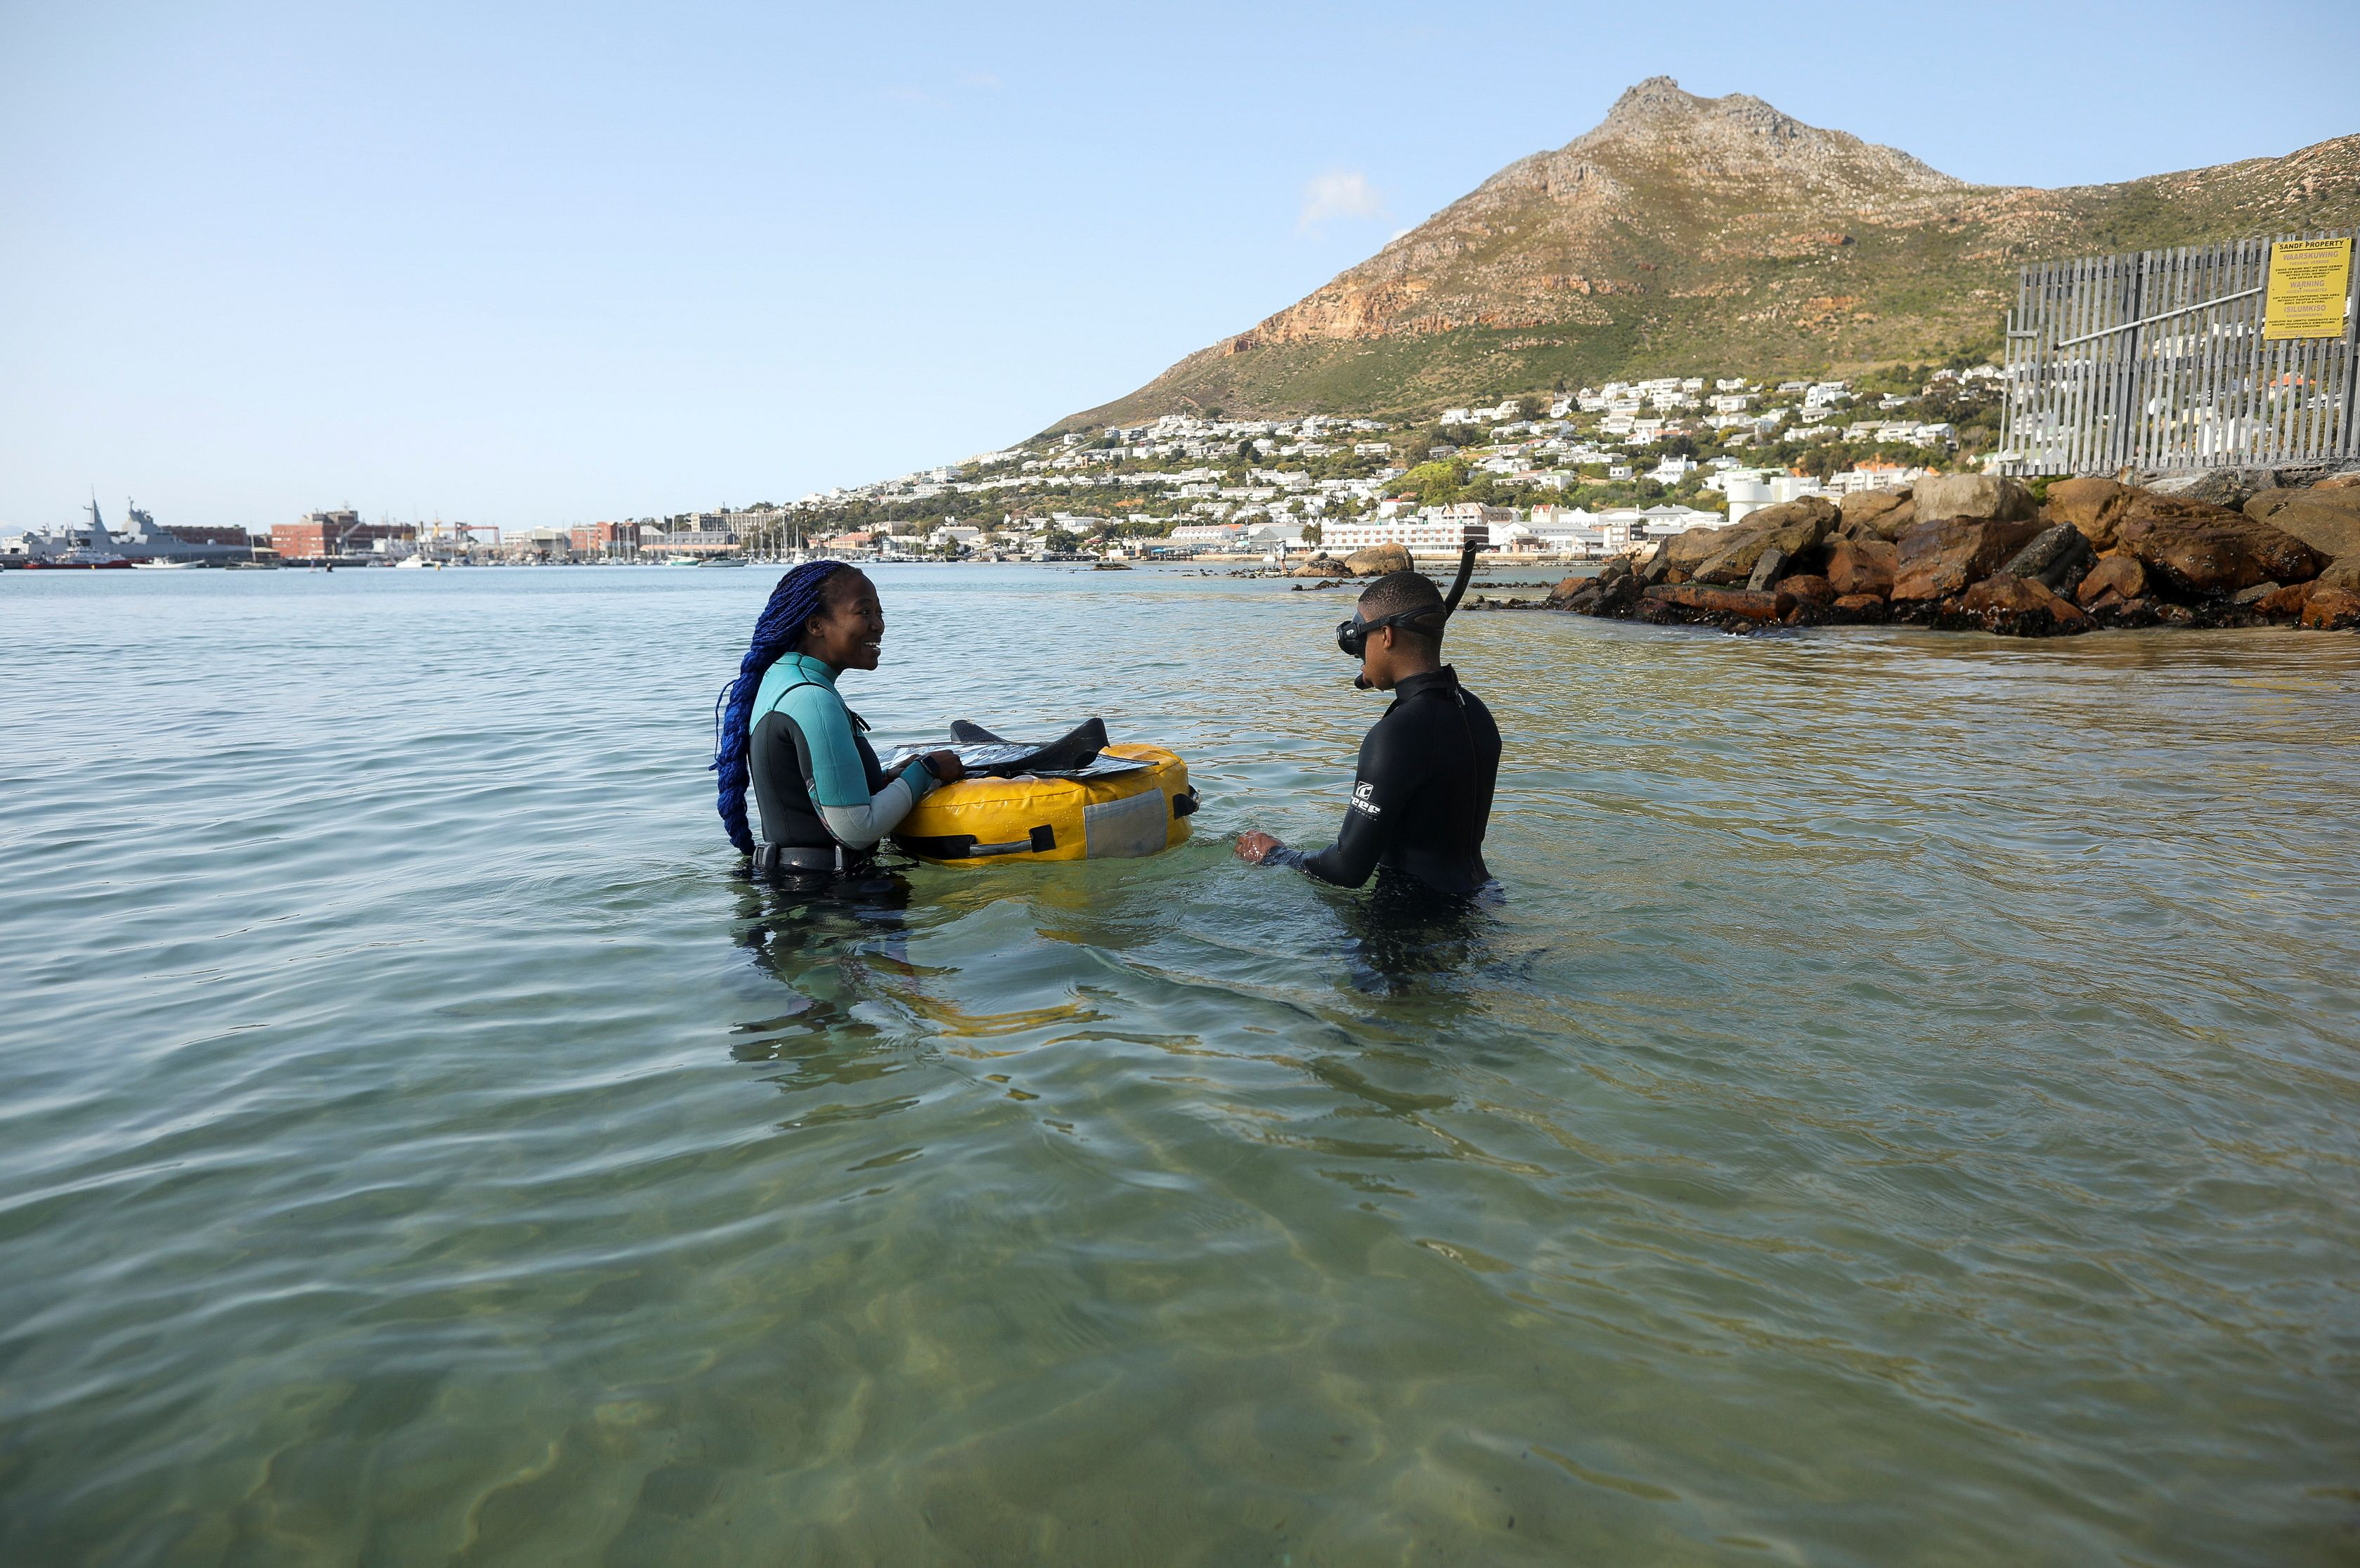 Free diver Zandile Ndlovu encourages a township youth to explore the marine world off Simonstown, near Cape Town, South Africa, August 22, 2021. Picture taken August 22, 2021. REUTERS/Mike Hutchings